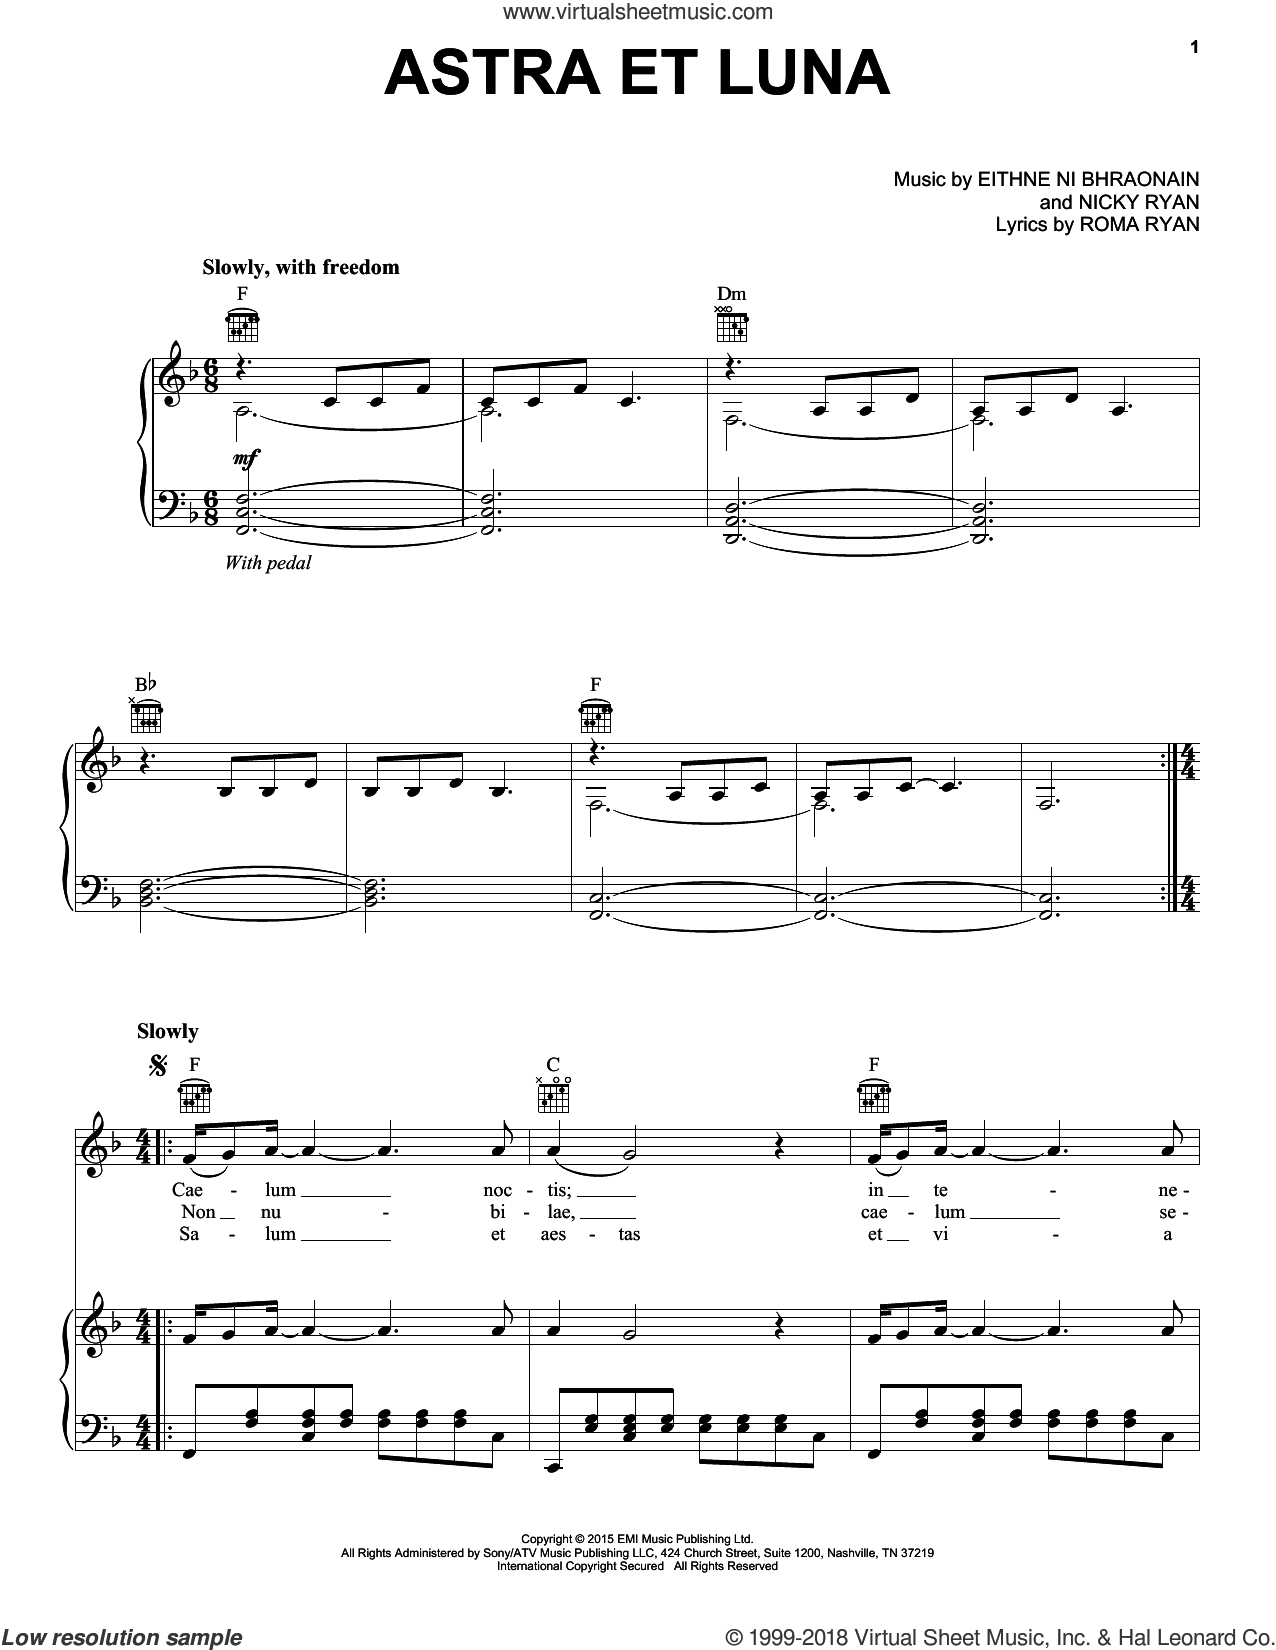 Astra Et Luna sheet music for voice, piano or guitar by Enya, Eithne Ni Bhraonain, Nicky Ryan and Roma Ryan, intermediate skill level